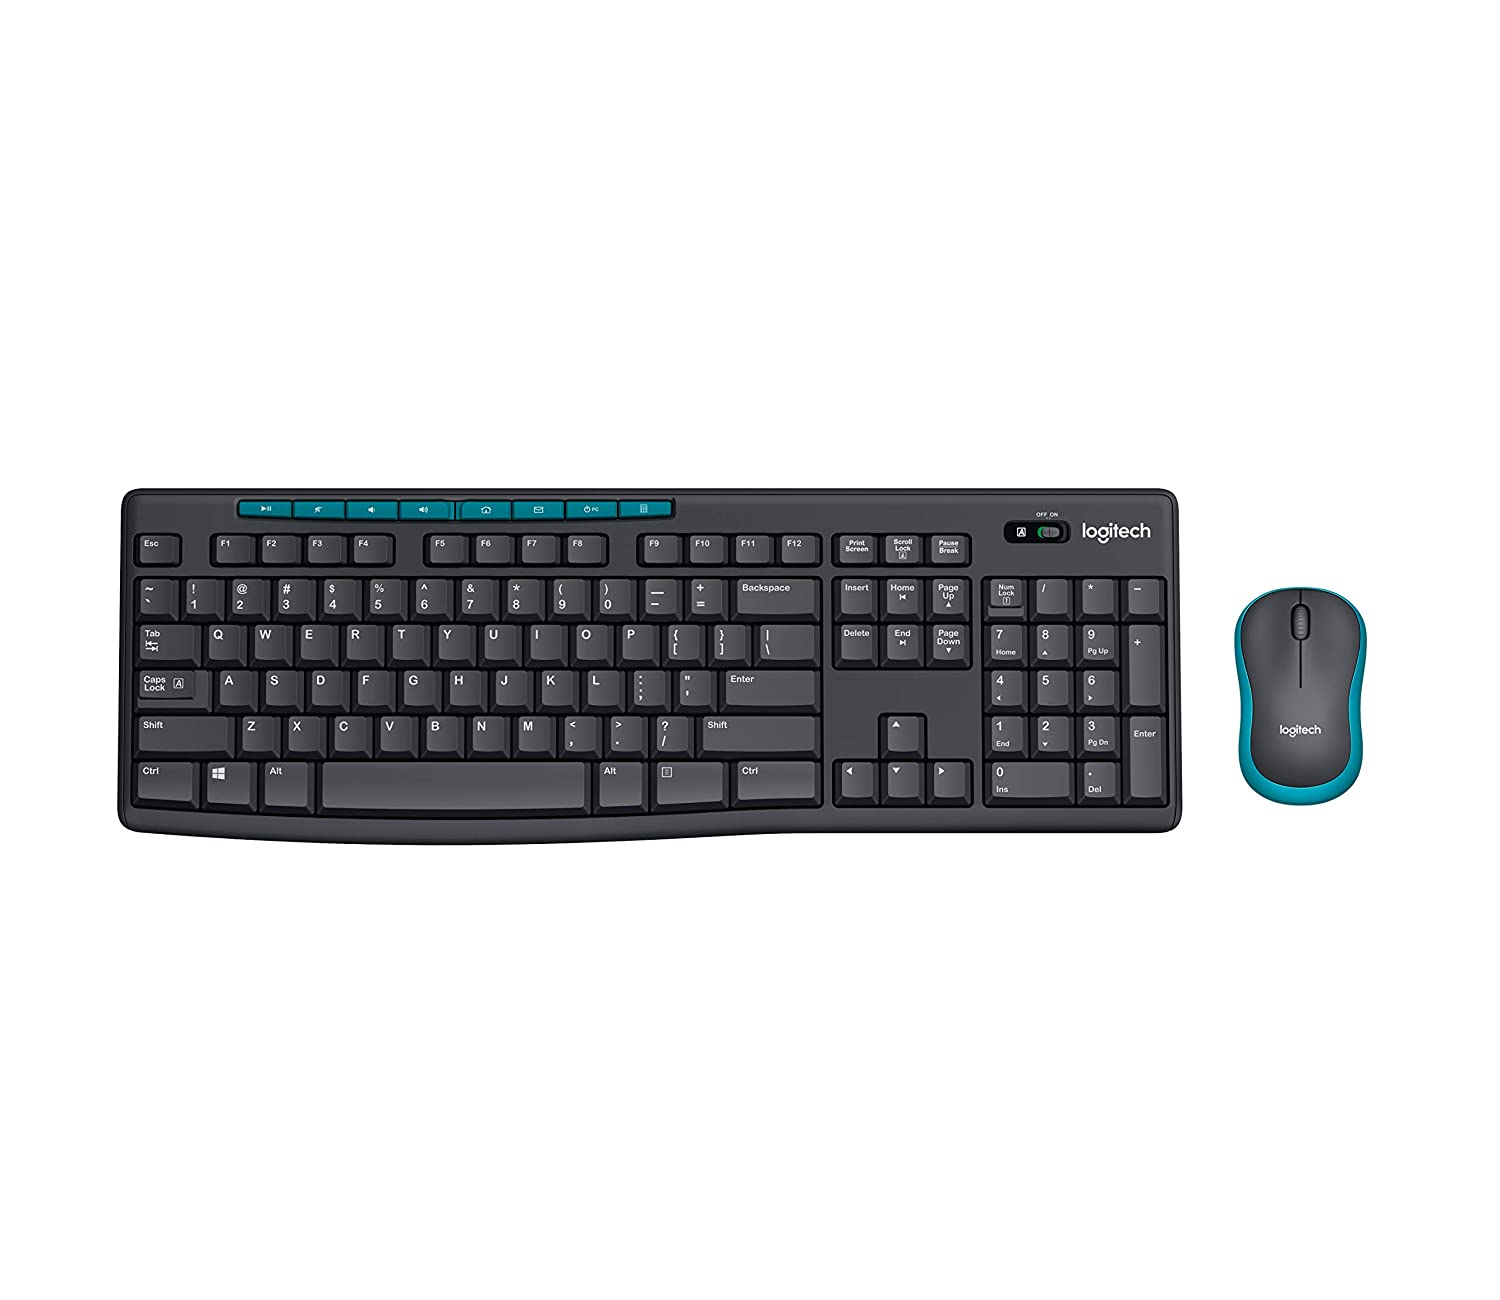 a09f96a7ccf Amazon.in: Buy Logitech MK275 Wireless Keyboard and Mouse Combo Online at  Low Prices in India | Logitech Reviews & Ratings